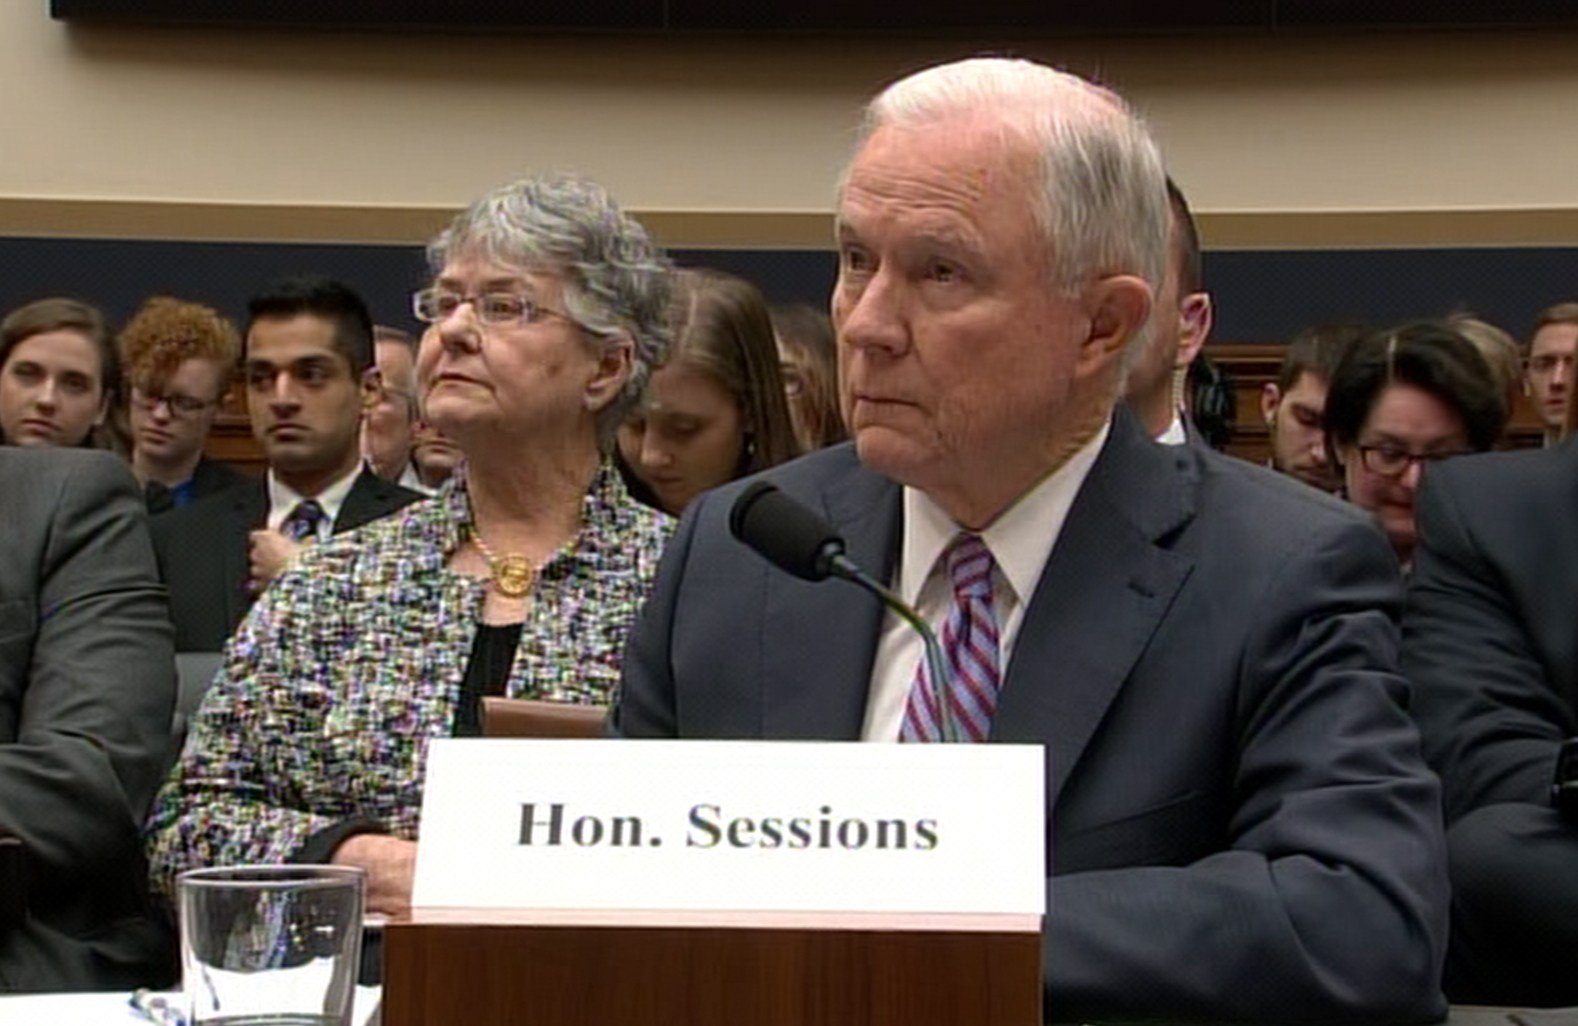 Attorney General Jeff Sessions testifies before the House Judiciary Committee Tuesday, Nov. 15, 2017. (Photo: CNN)